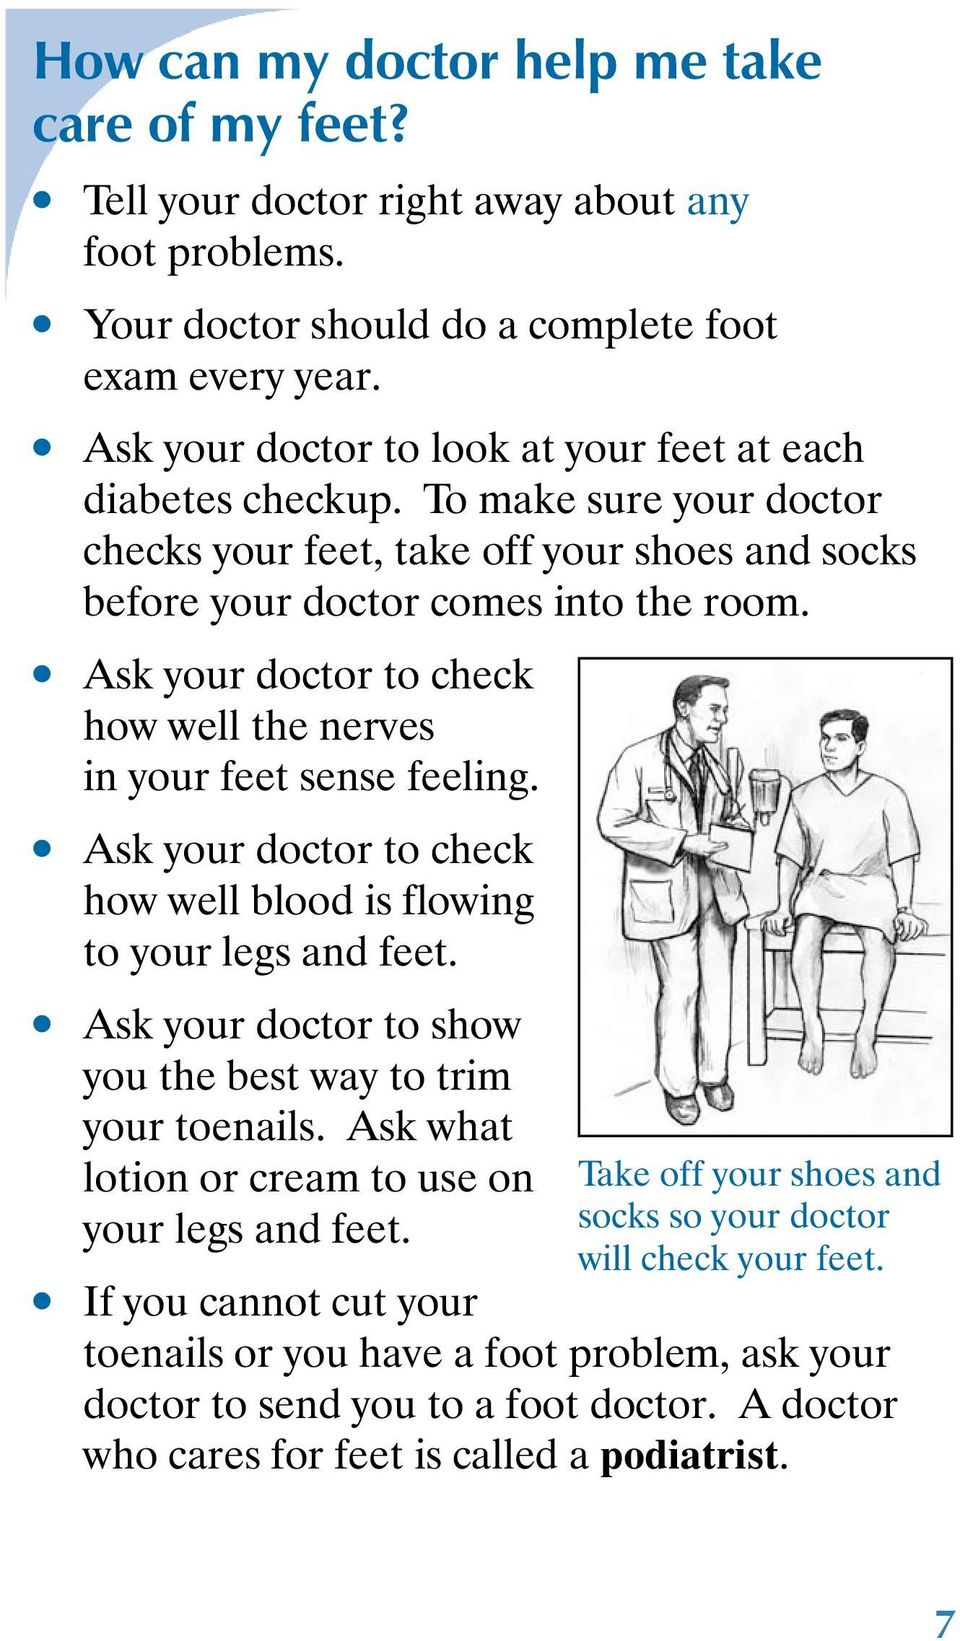 Ask your doctor to check how well the nerves in your feet sense feeling. Ask your doctor to check how well blood is flowing to your legs and feet.